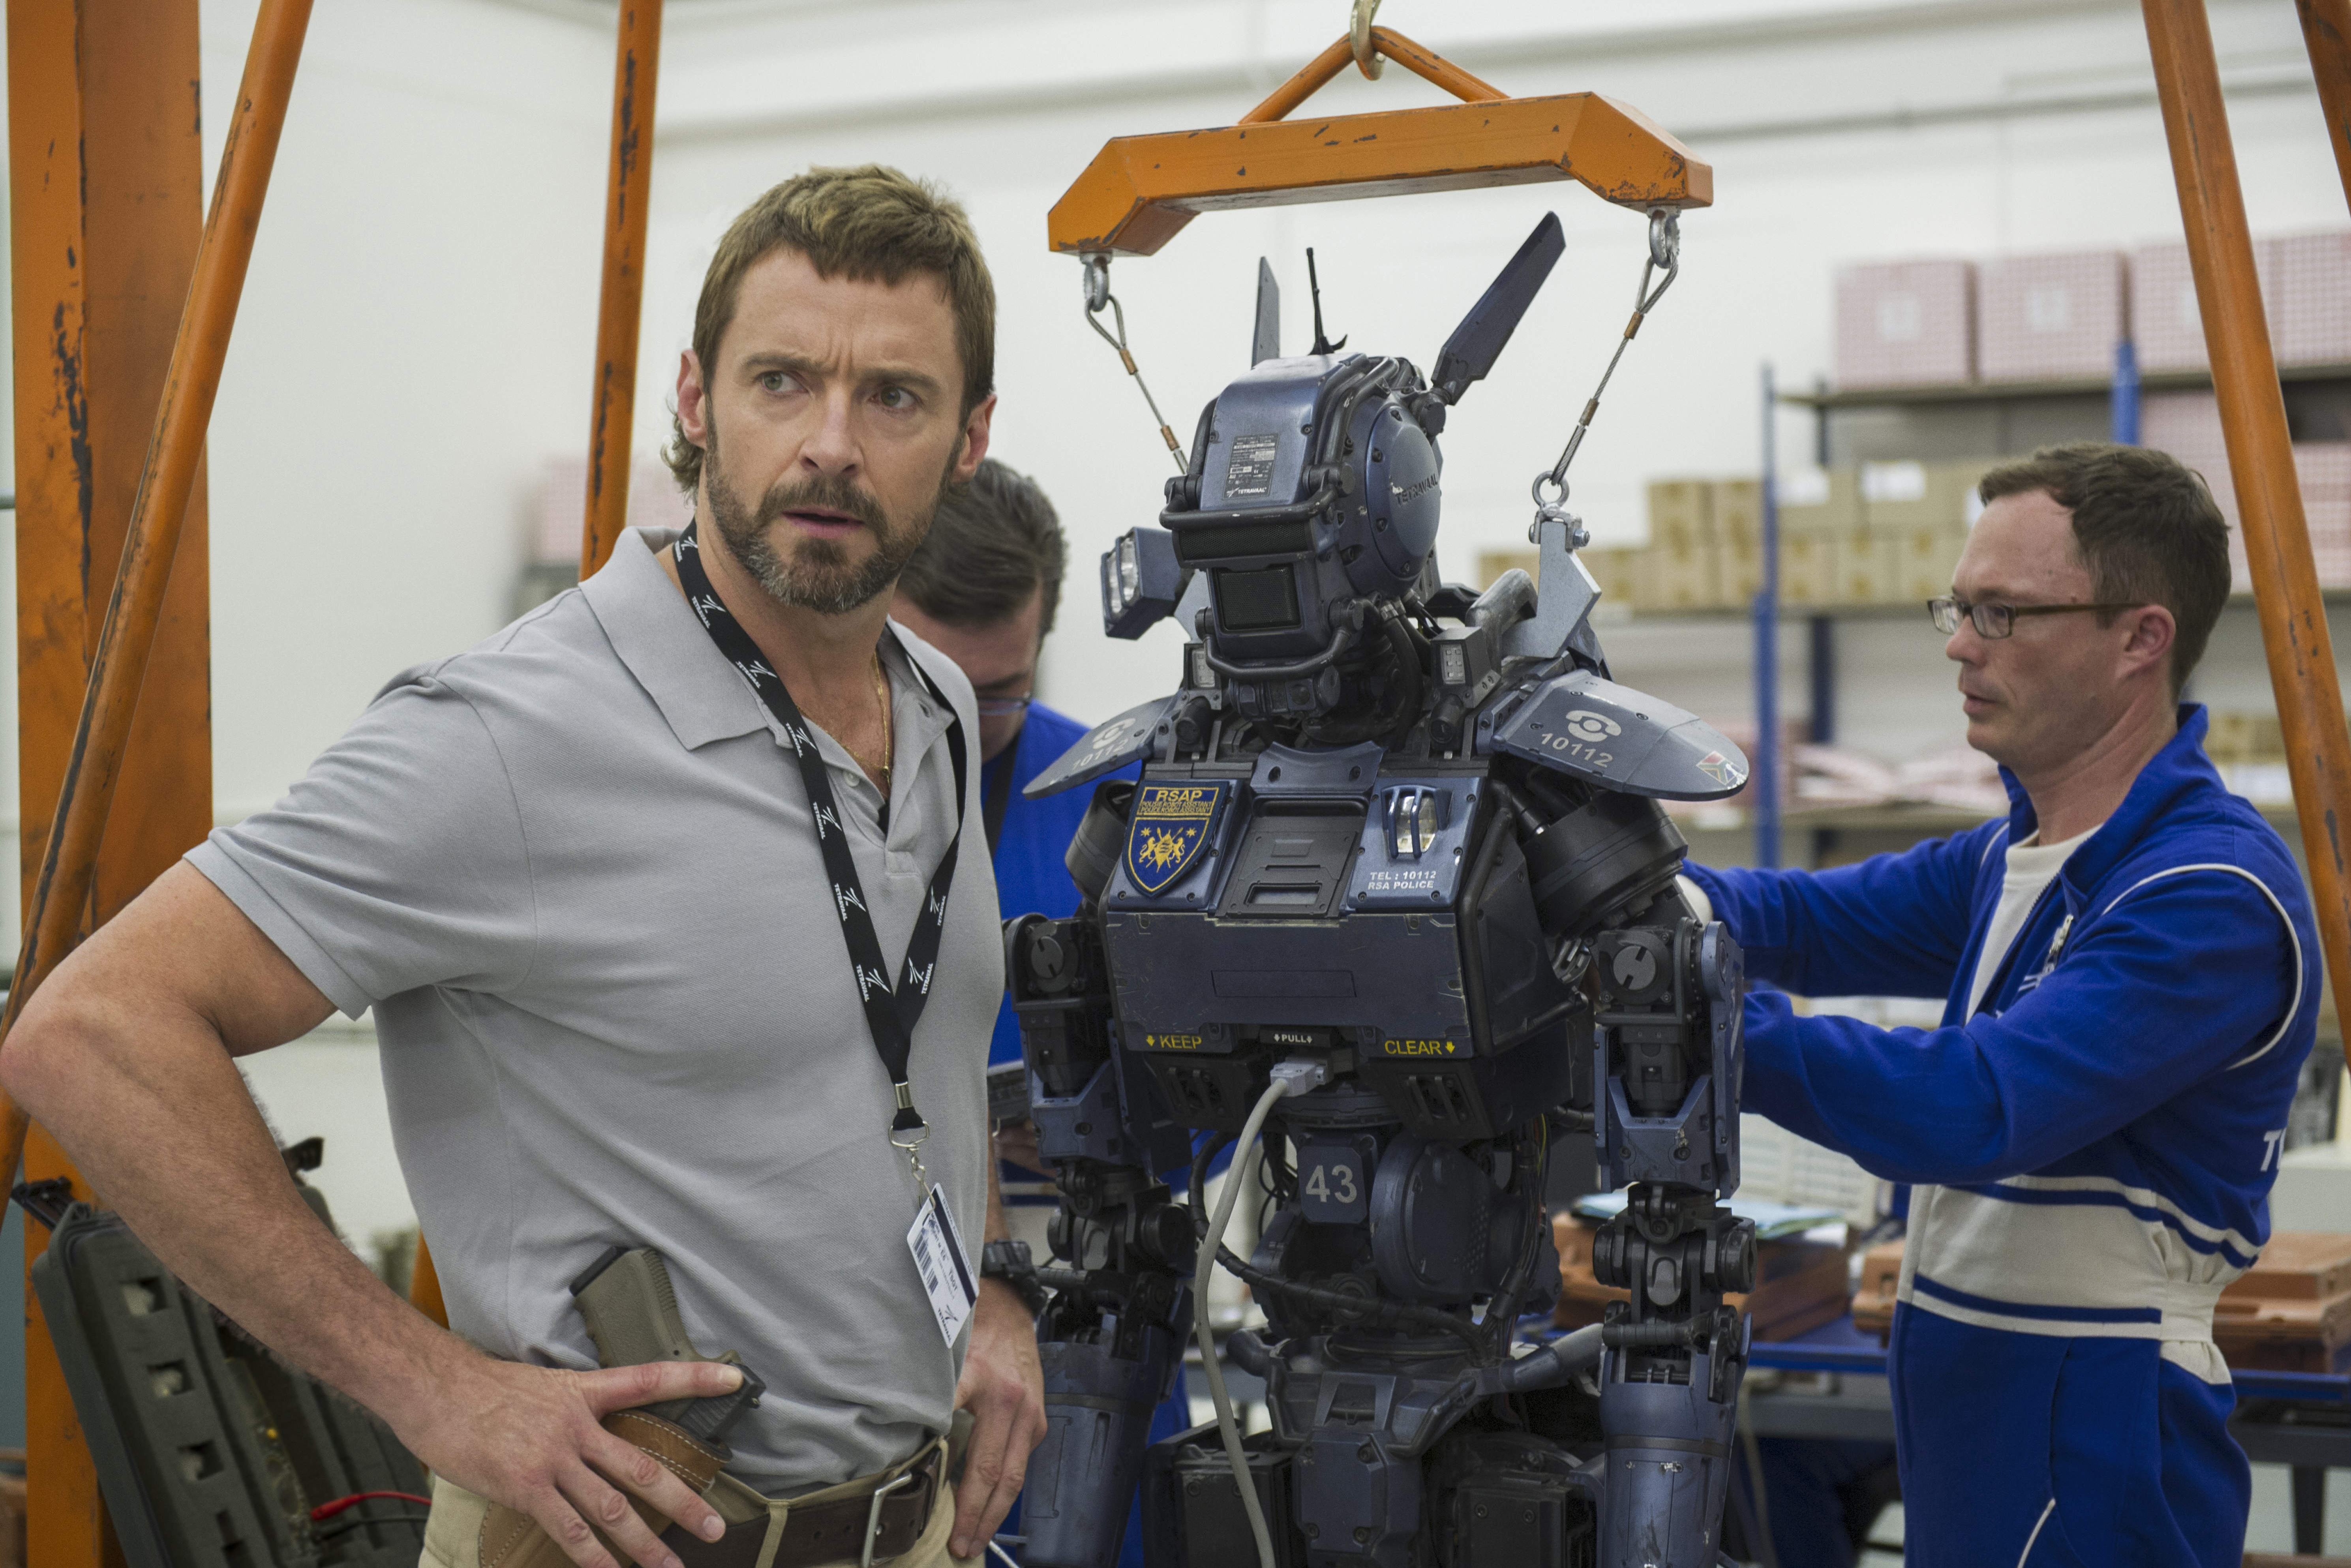 CHAPPIE - 2015 FILM STILL - Hugh Jackman stars as Vincent - Photo Credit: Stephanie Blomkamp  © 2014 CTMG, Inc.  All rights reserved.